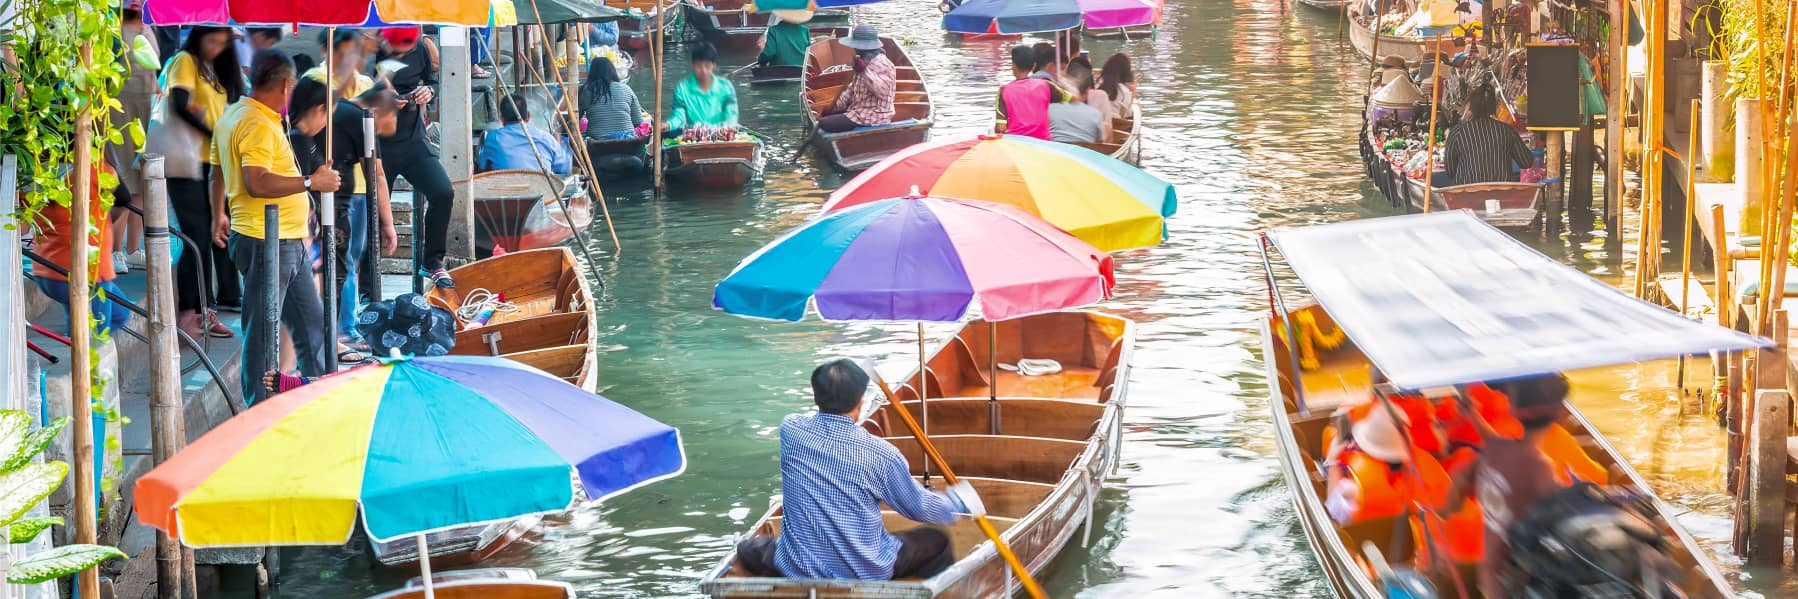 Damnoen Saduak Floating Market Bangkok Small Group Tour – Half Day gallery